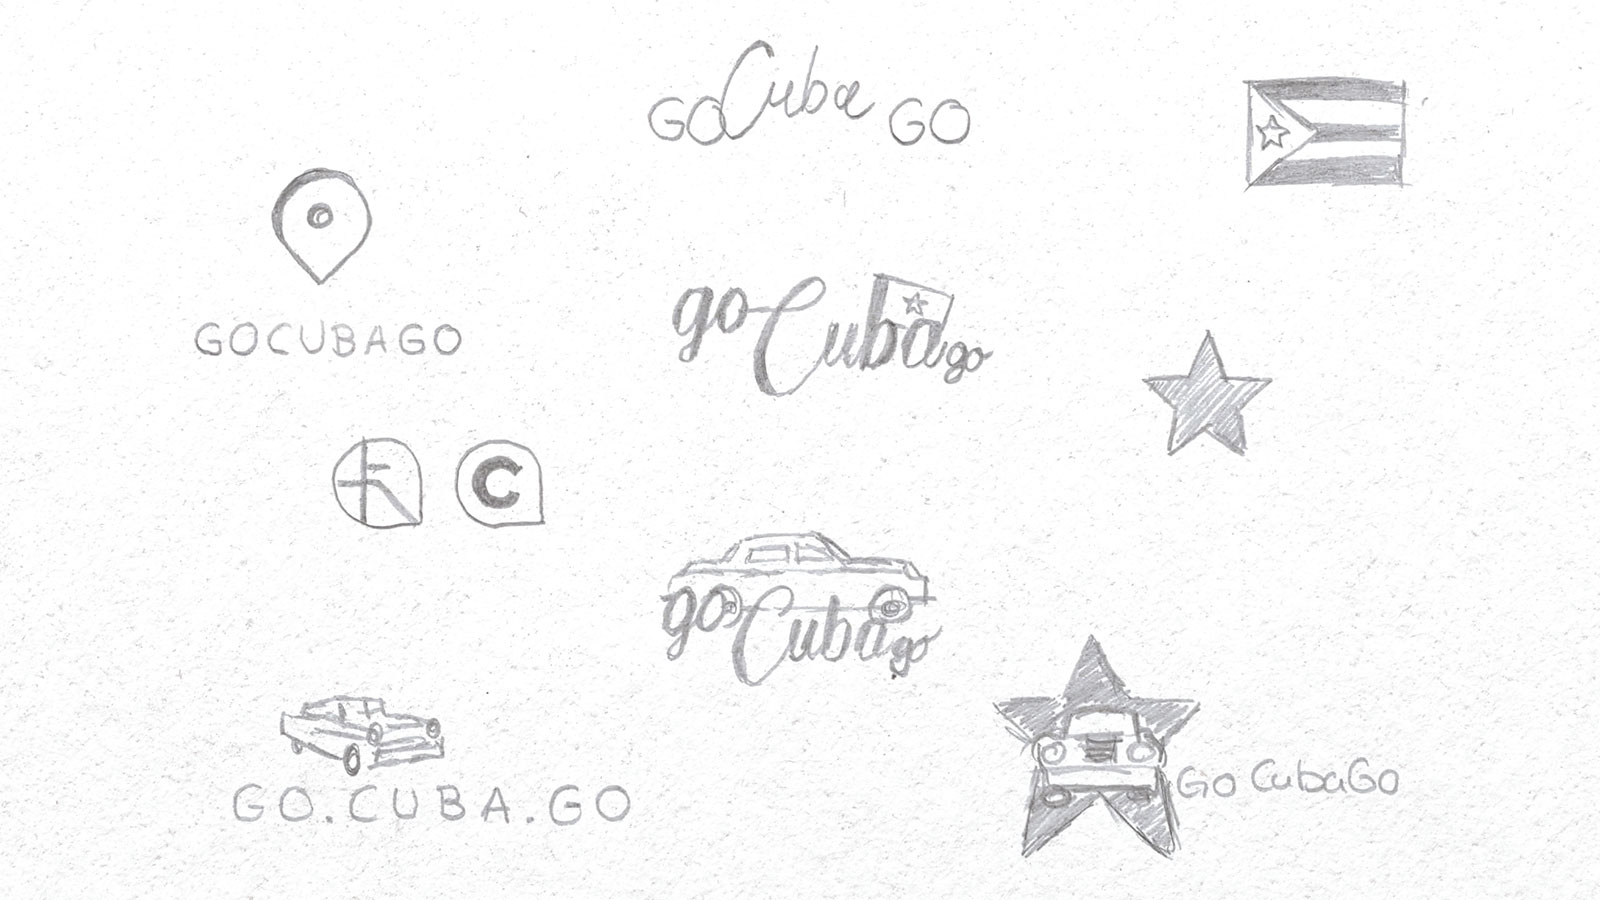 Go Cuba Go | gocubago.com | 2018 (Logo Scribble) © echonet communication GmbH